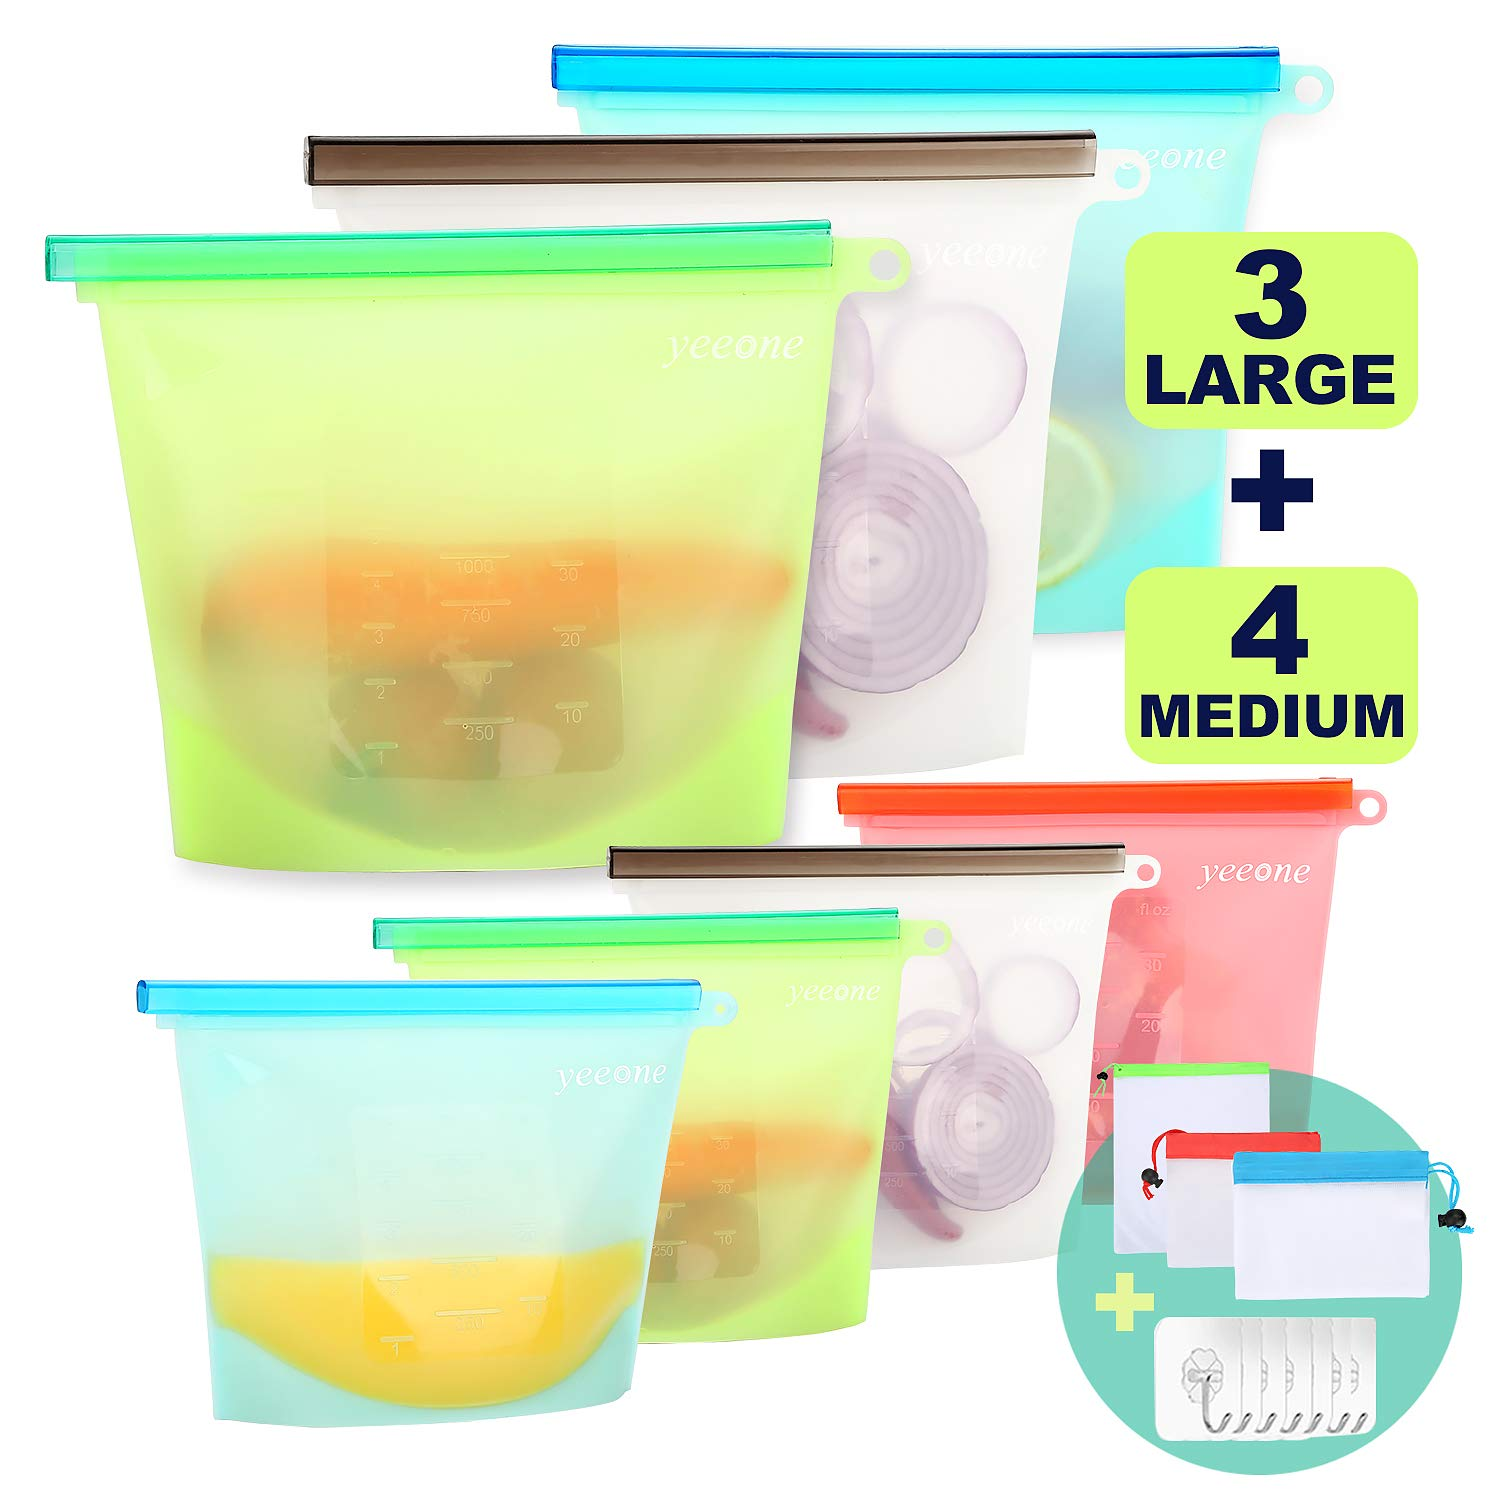 Reusable Silicone Food Storage Bags ,Yeeone 17 Pack Food Grade Airtight Seal Versatile Preservation Bags for Sandwich, Snack, Vegetable, Liquid, Meat, lunch, fruit, Freezer Containers